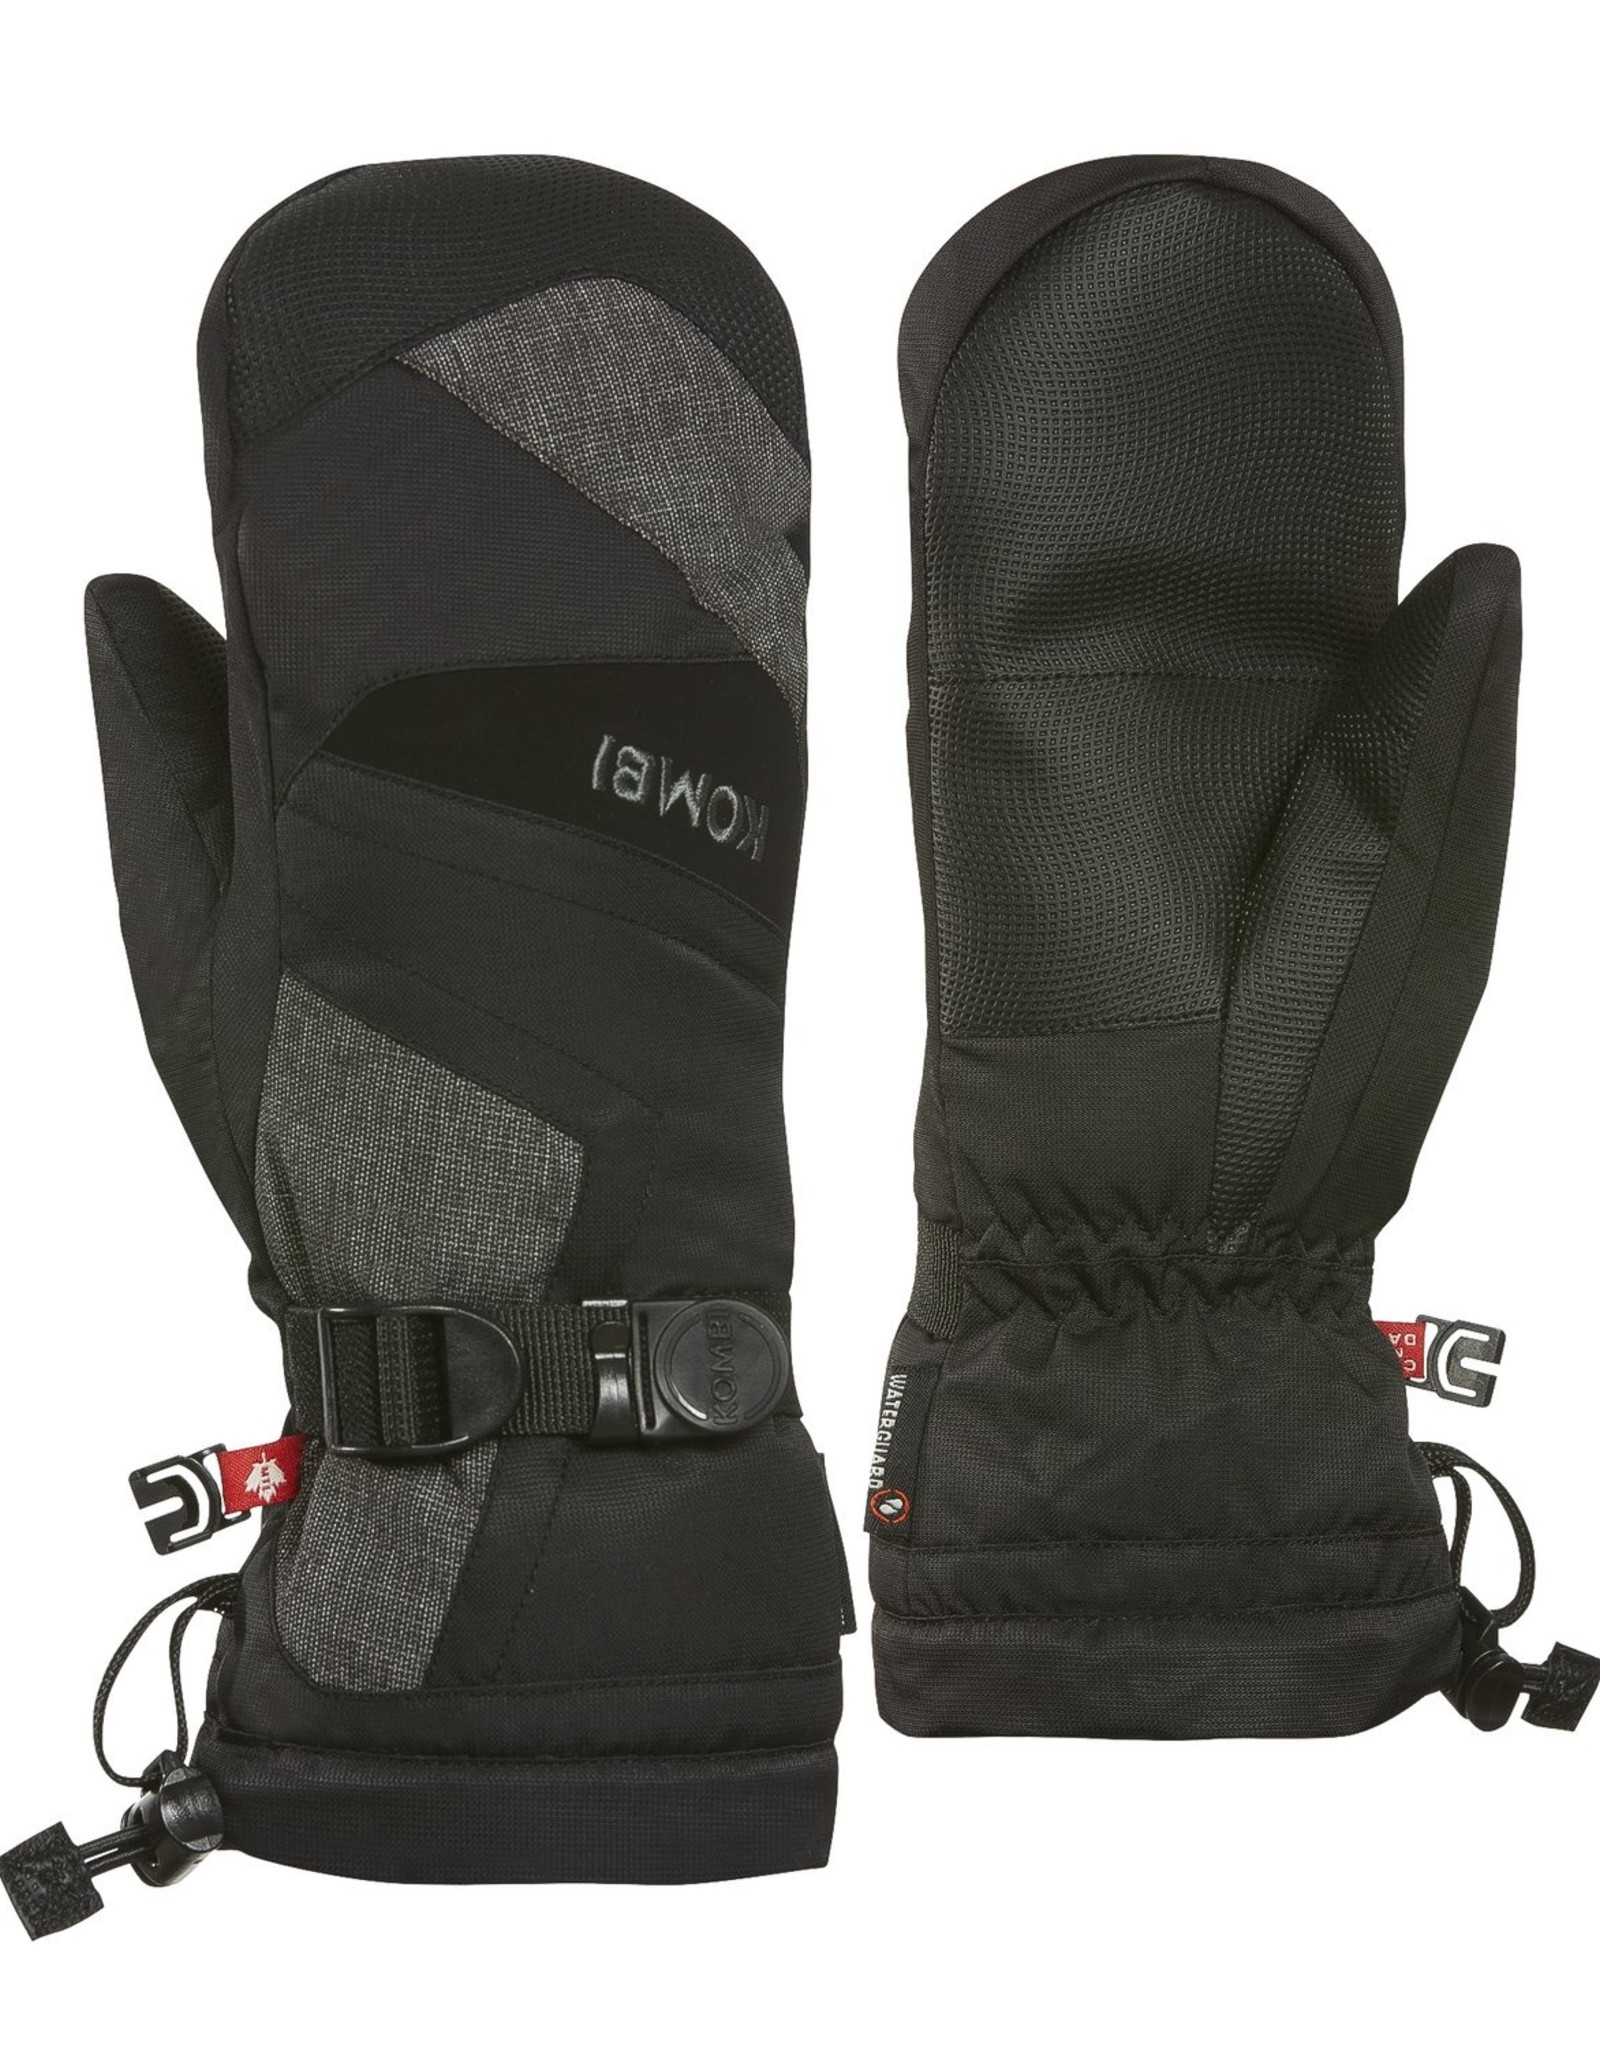 Kombi The Original Mens Mitt -W2020